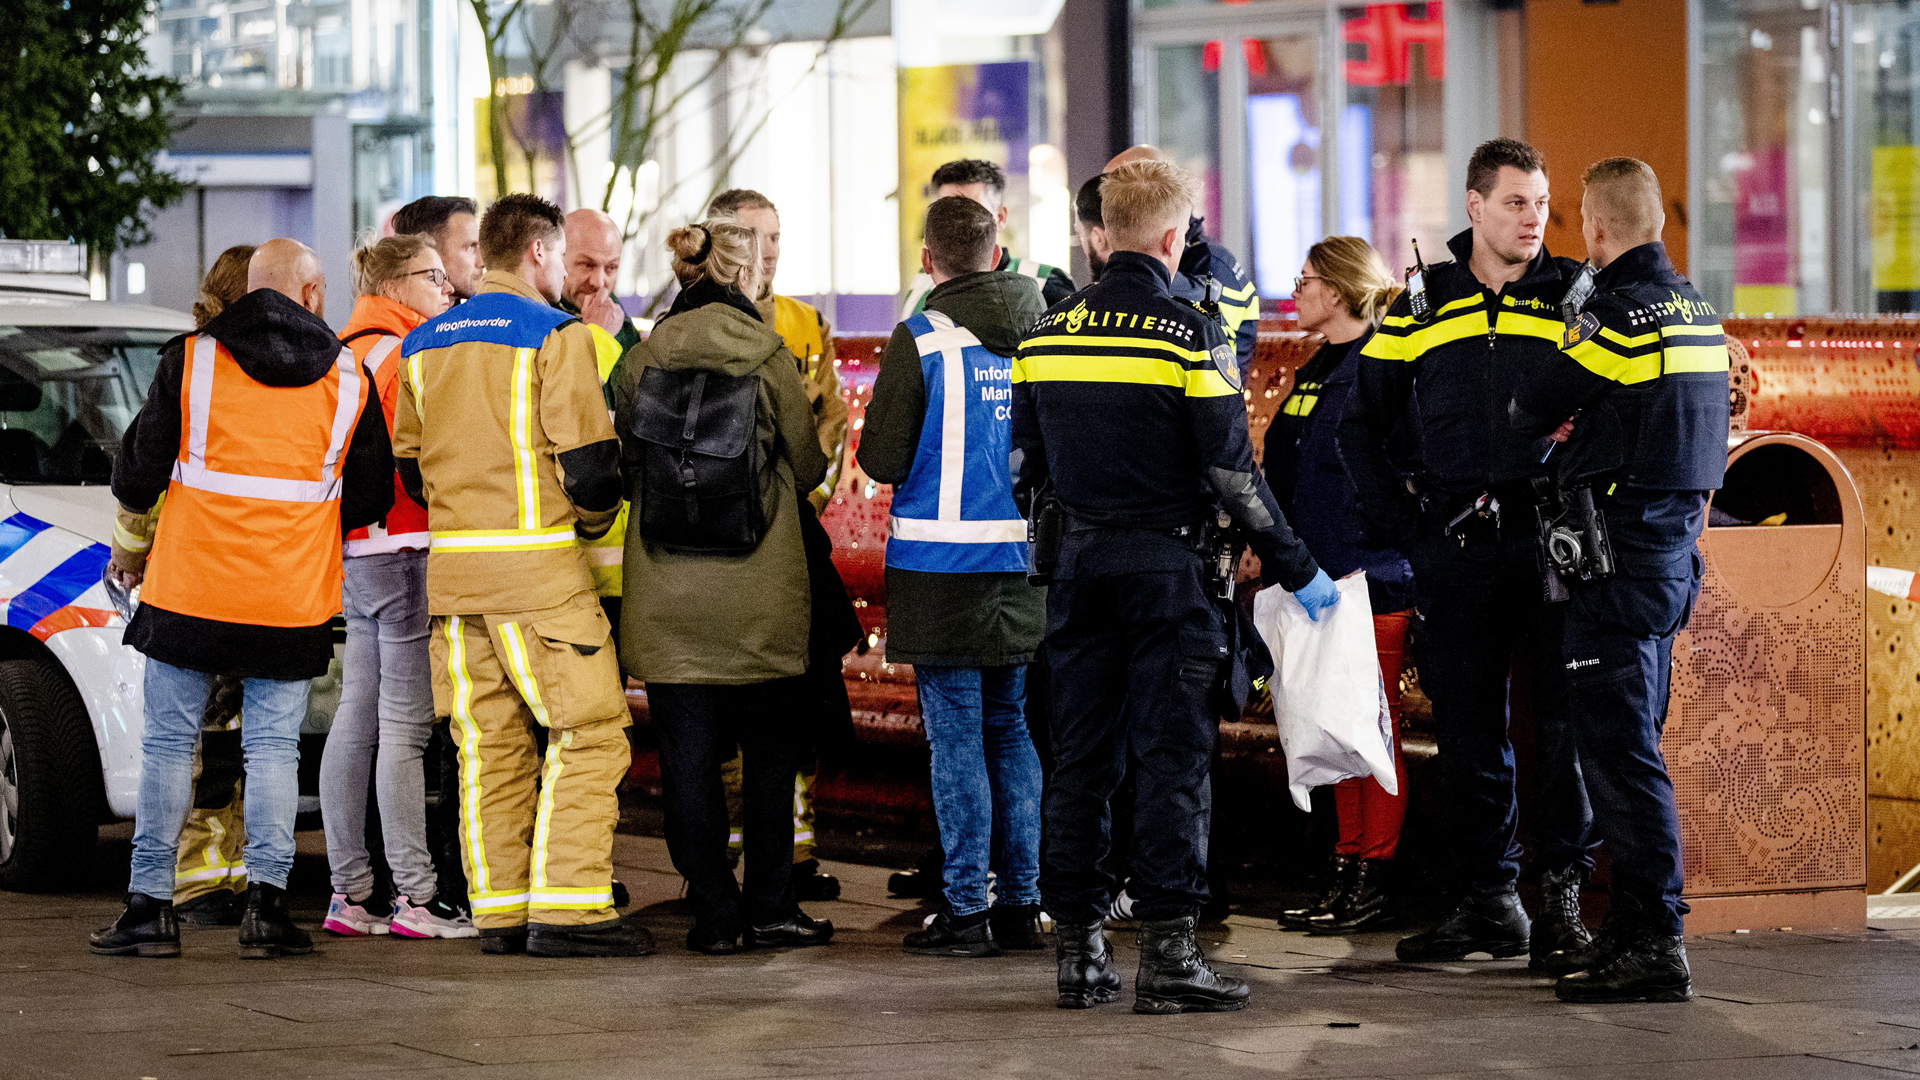 Police arrive at the Grote Marktstraat, one of the main shopping streets in the center of the Dutch city of The Hague, after several people were wounded in a stabbing incident on Nov. 29, 2019. (Credit: Sem Van Der Wal//ANP/AFP/Getty Images)